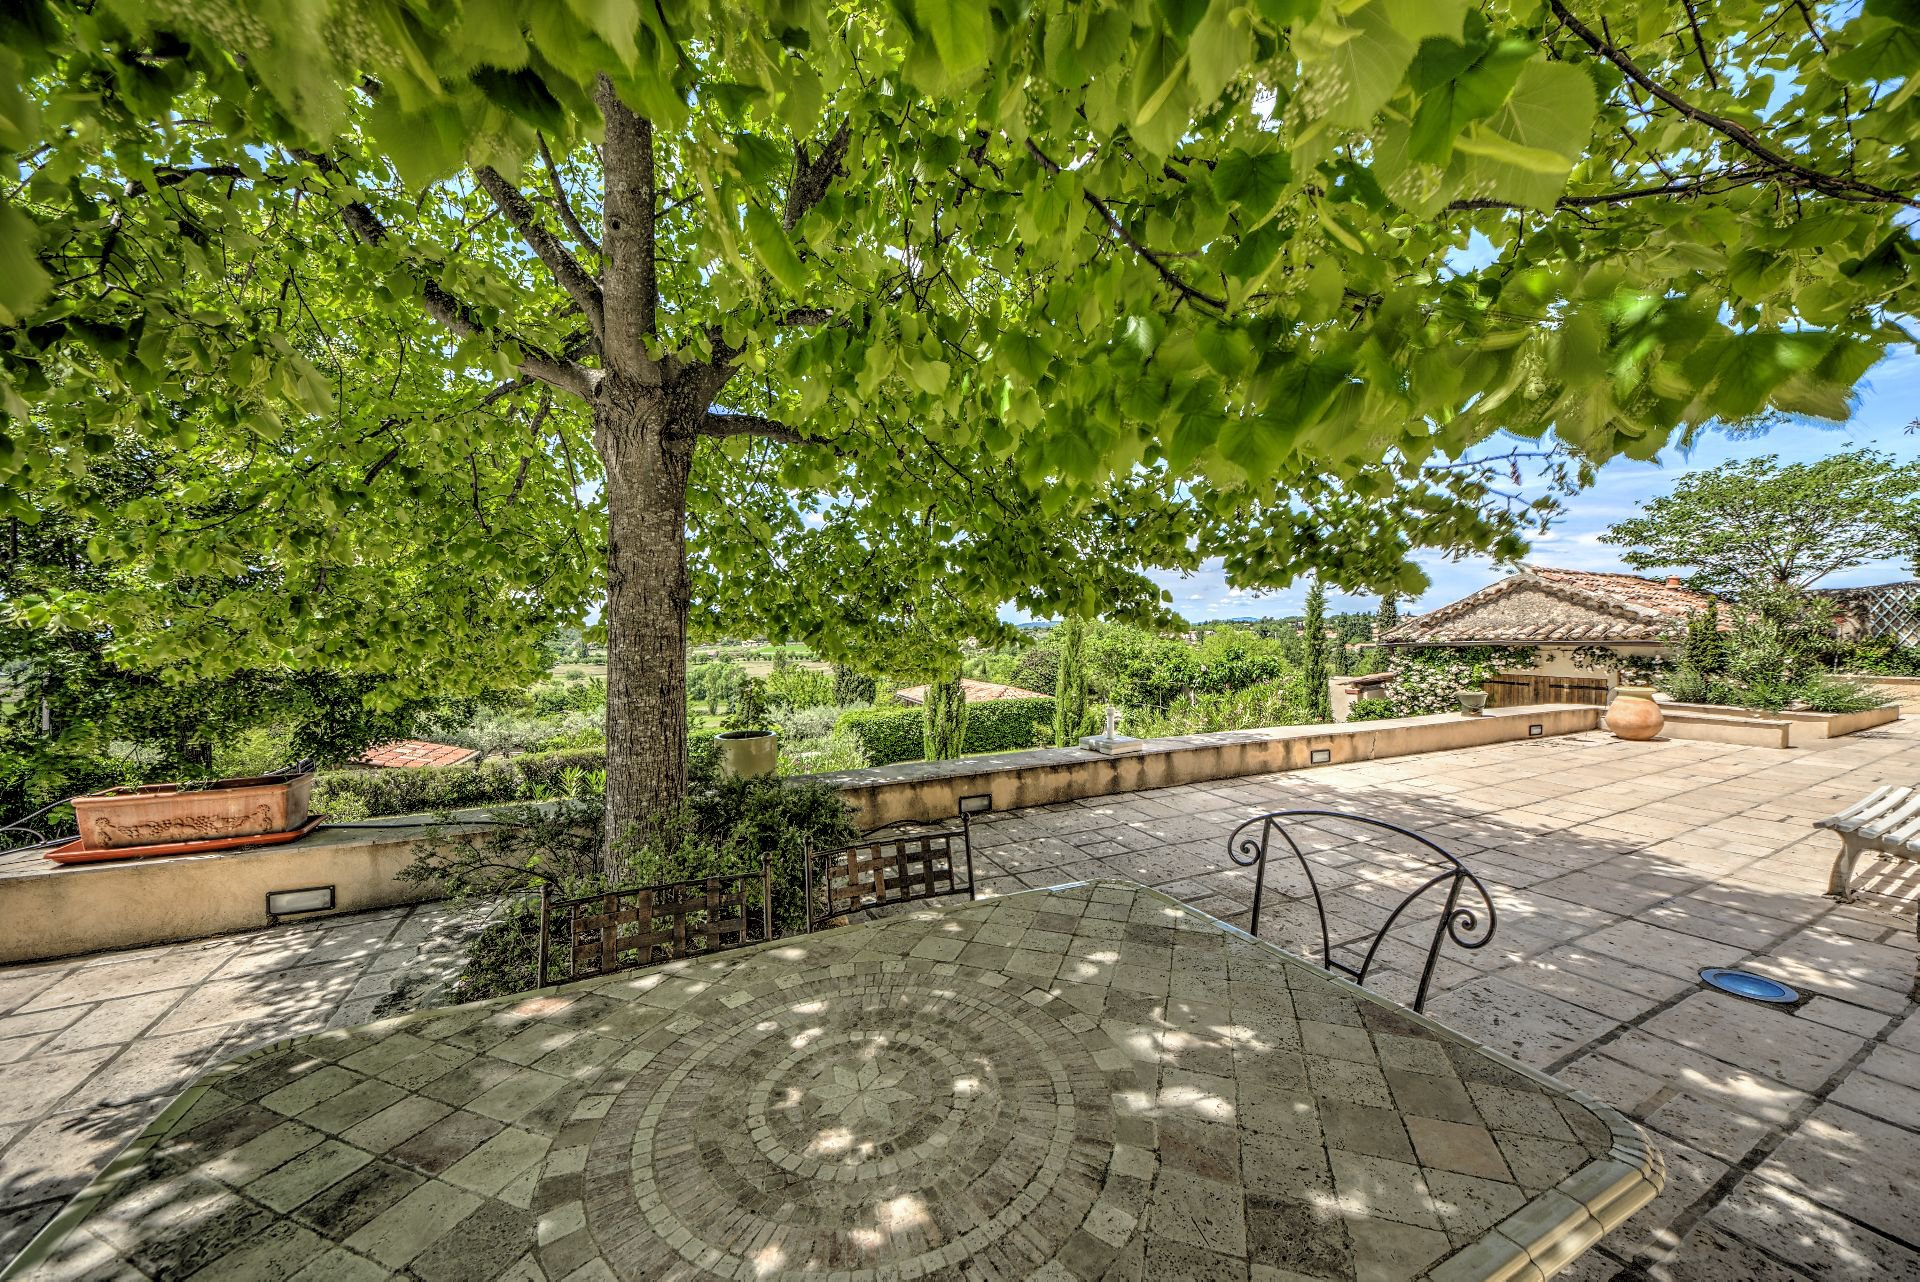 Terrace of the newly renovated house 5 bedrooms, 318 m², Aups, Var, Provence, Verdon